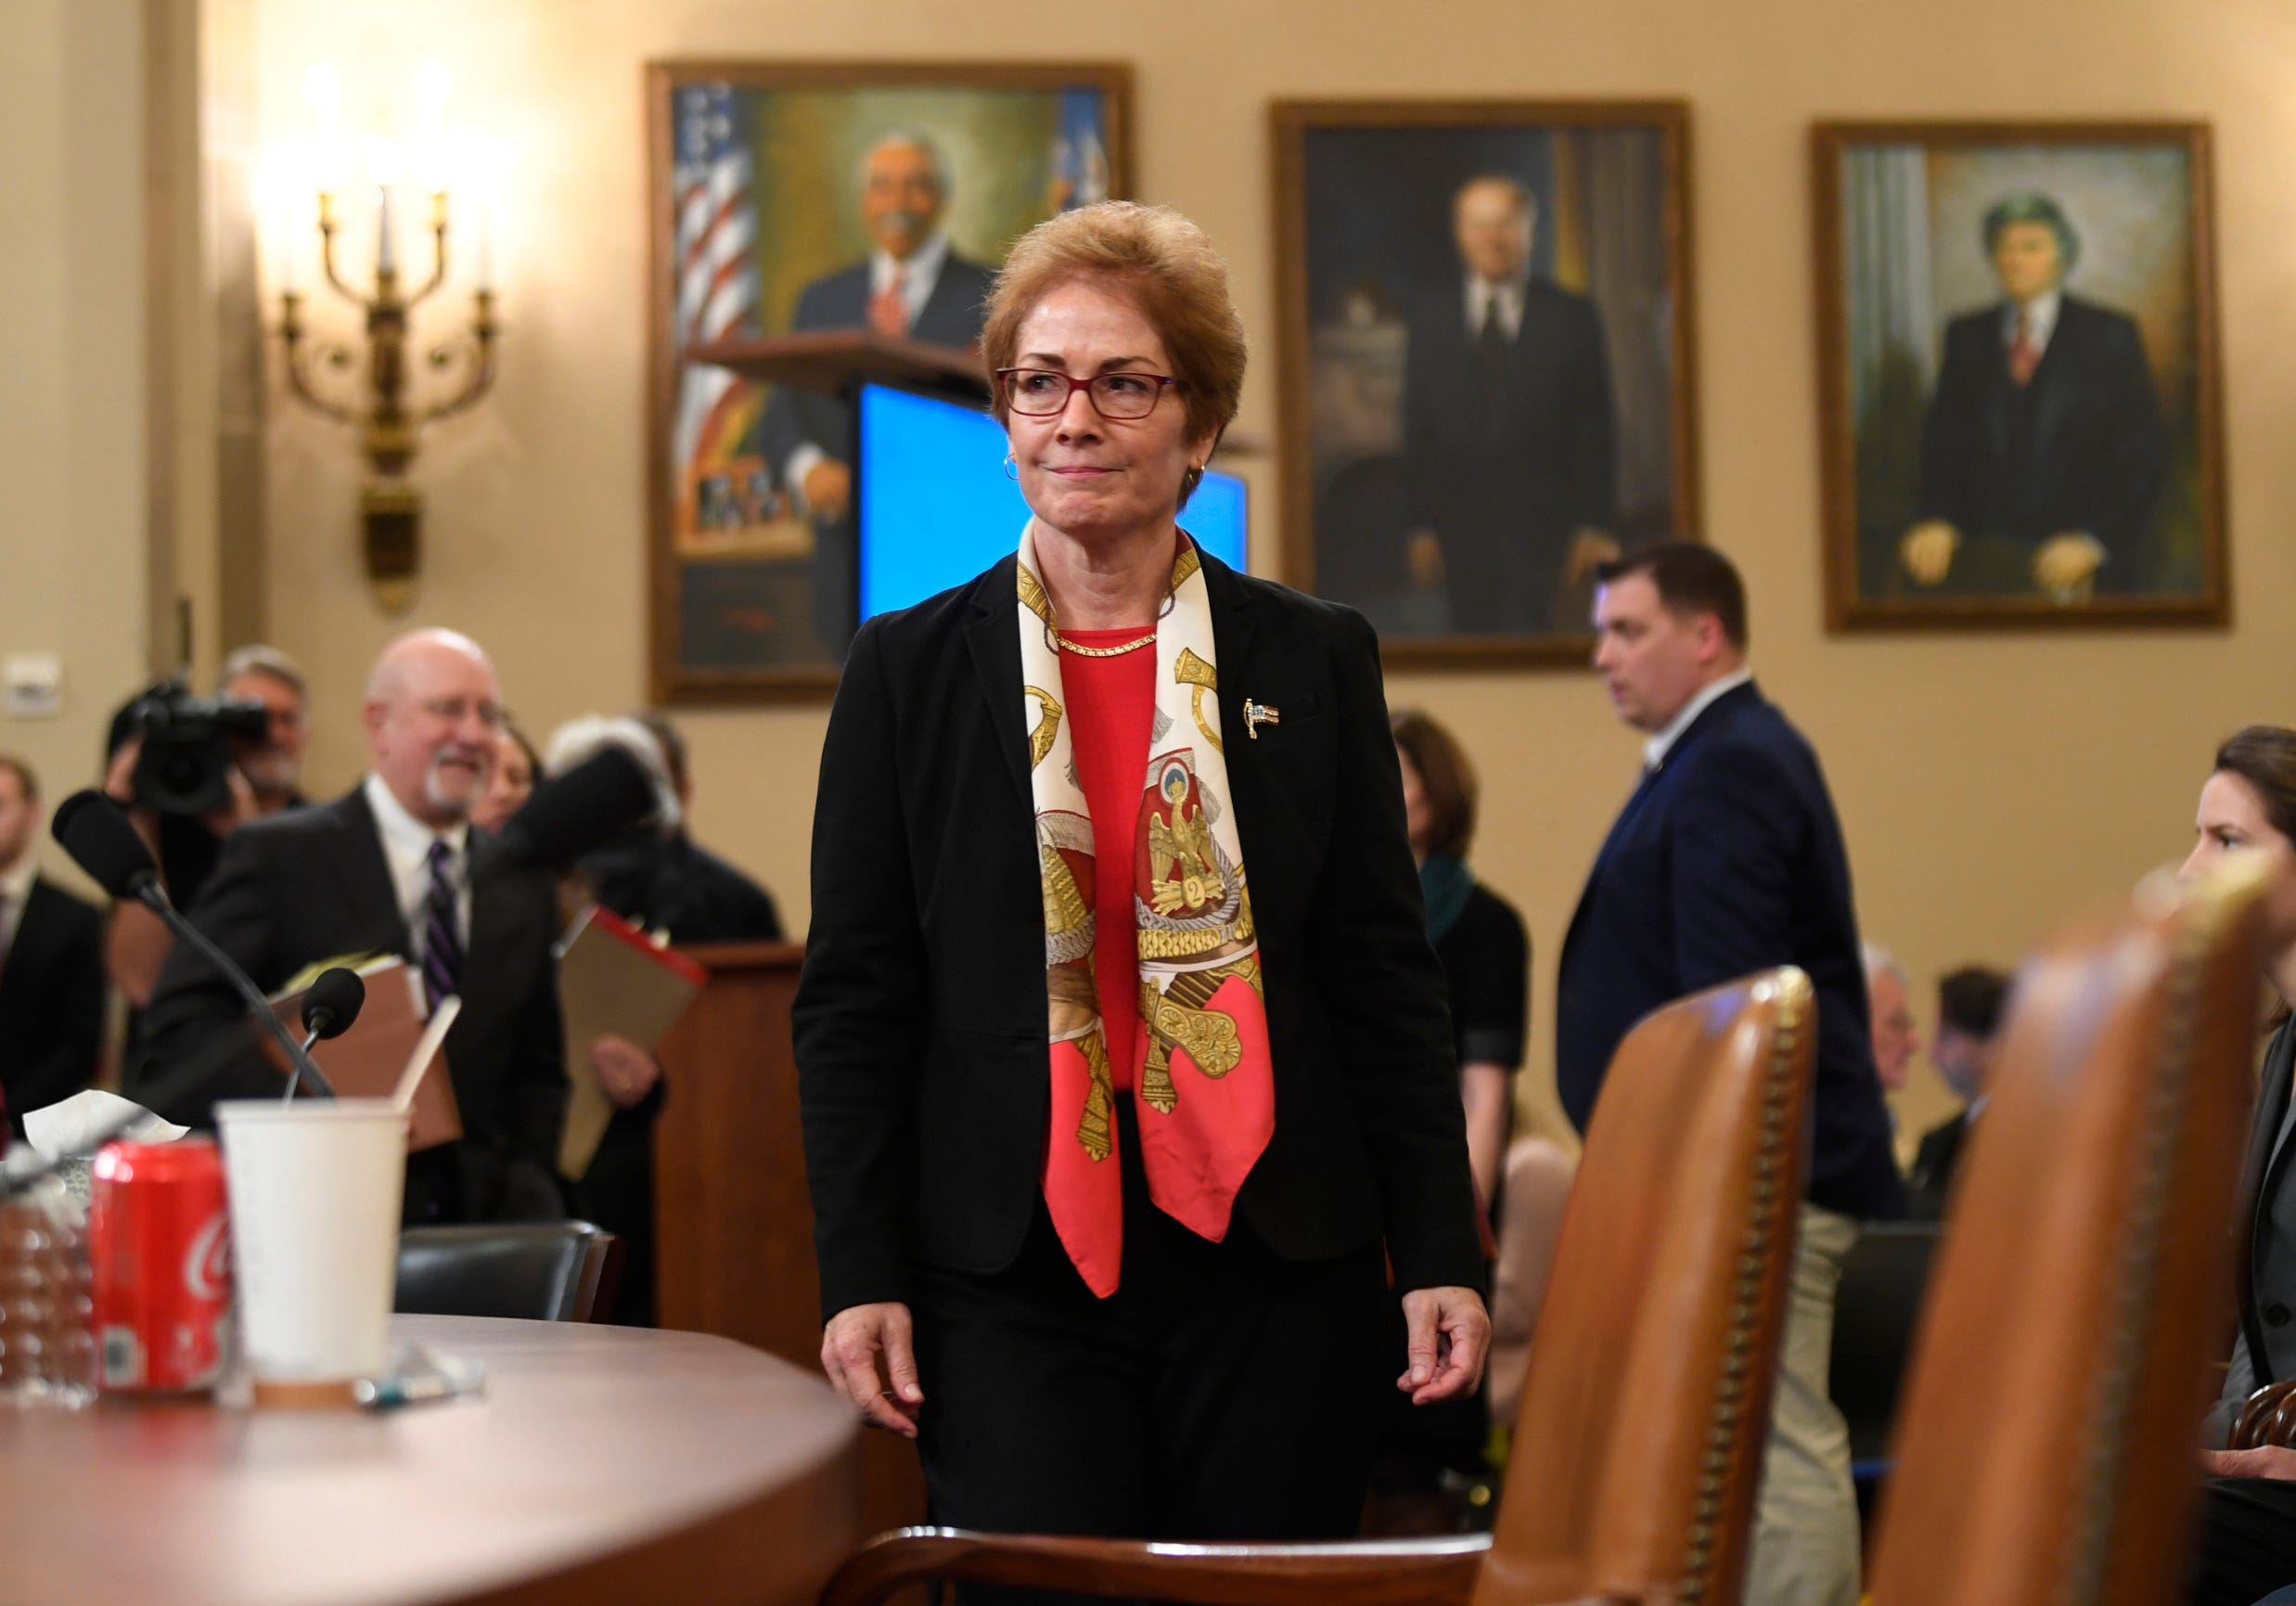 Ousted Ukraine ambassador Marie Yovanovitch part of Rudy Giuliani federal inquiry, lawyer says